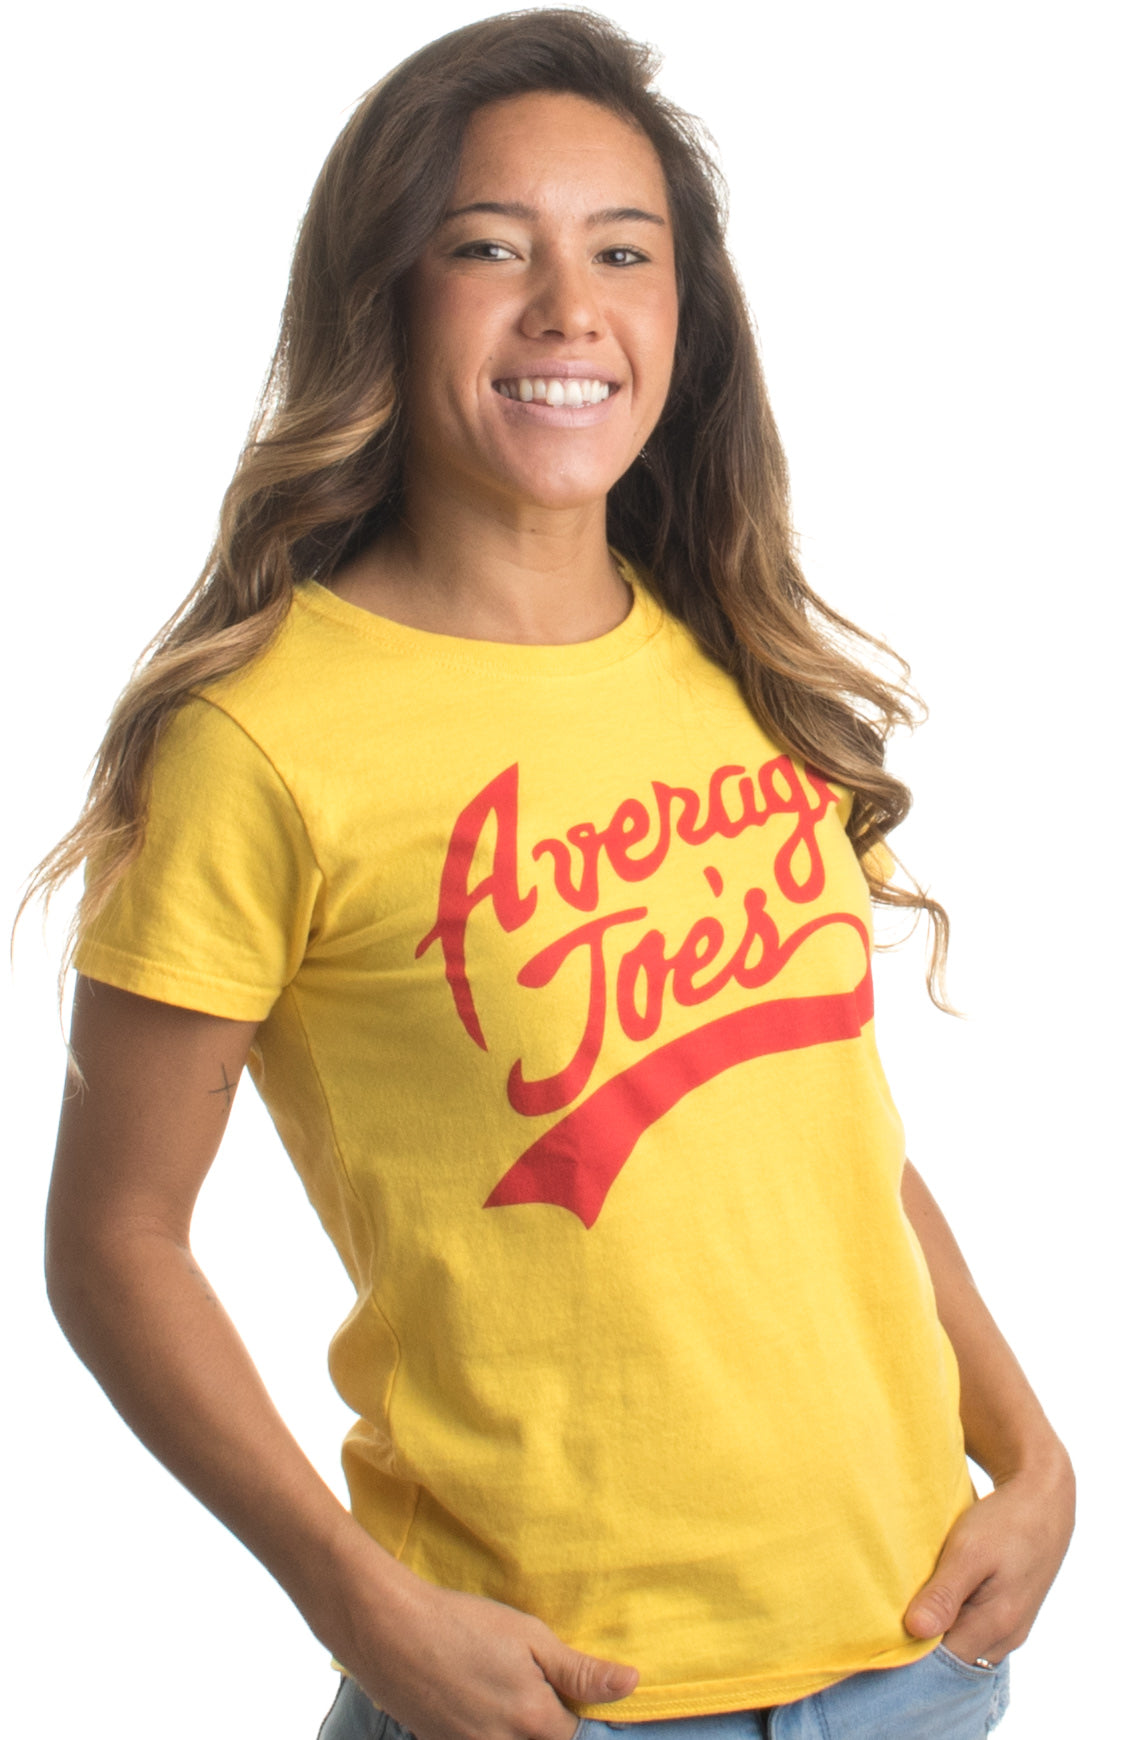 Average Joes | Funny Dodgeball Team Sports Jersey Ladies' T